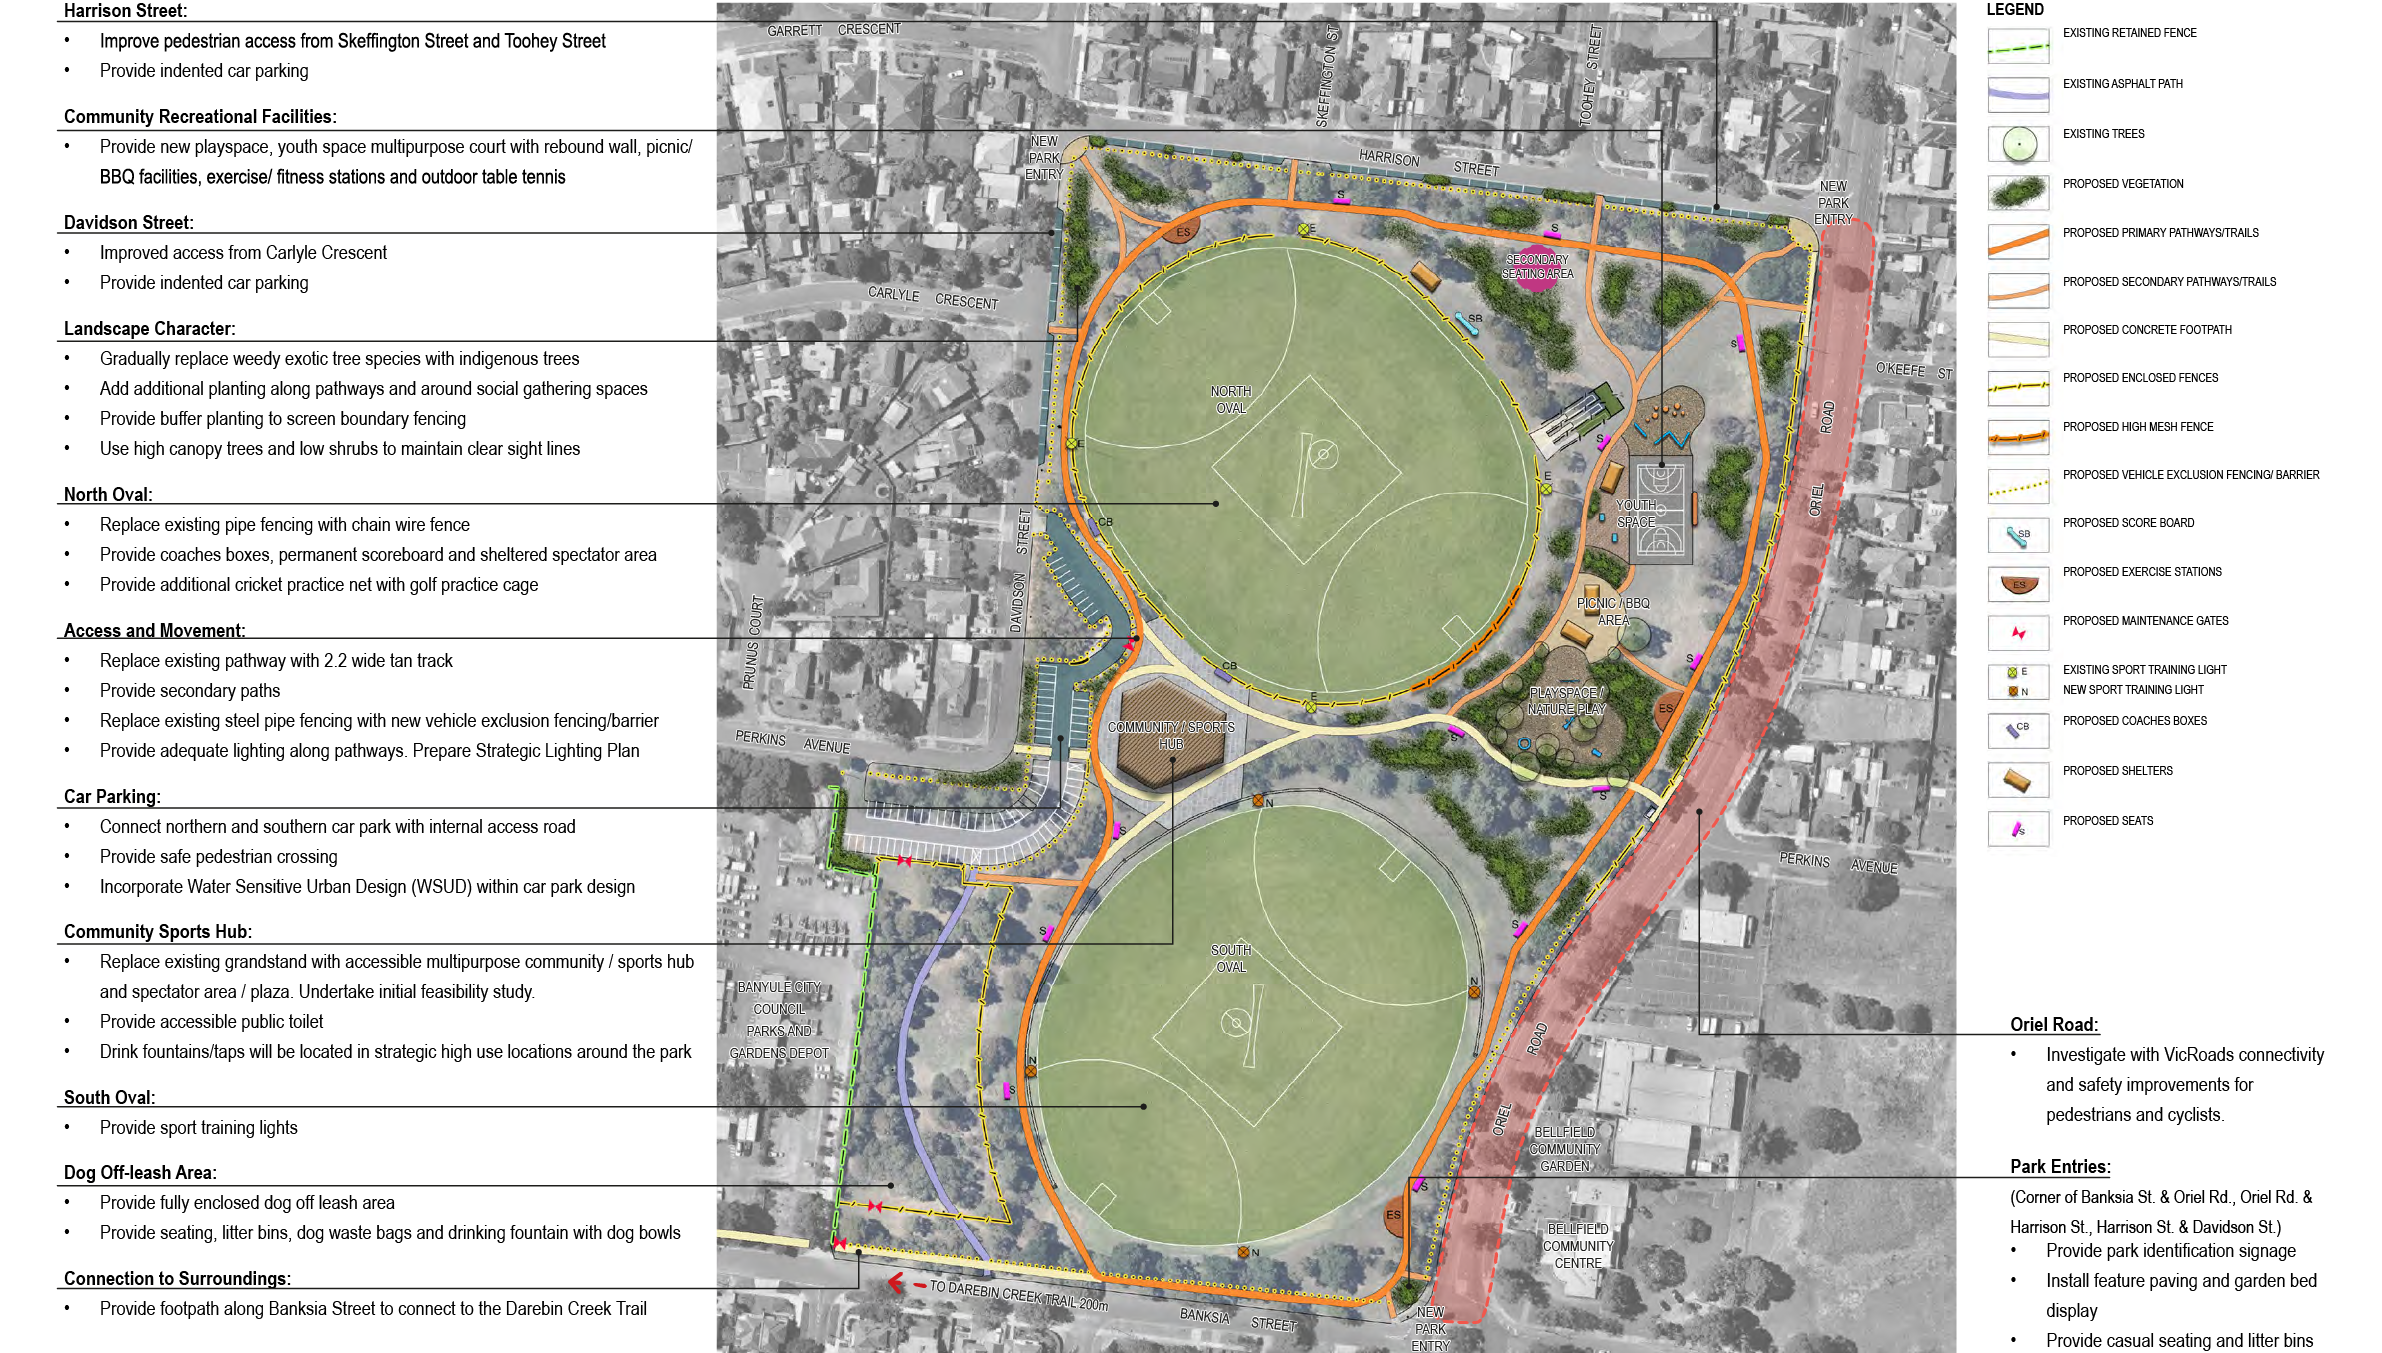 Ford Park Master Plan Summary